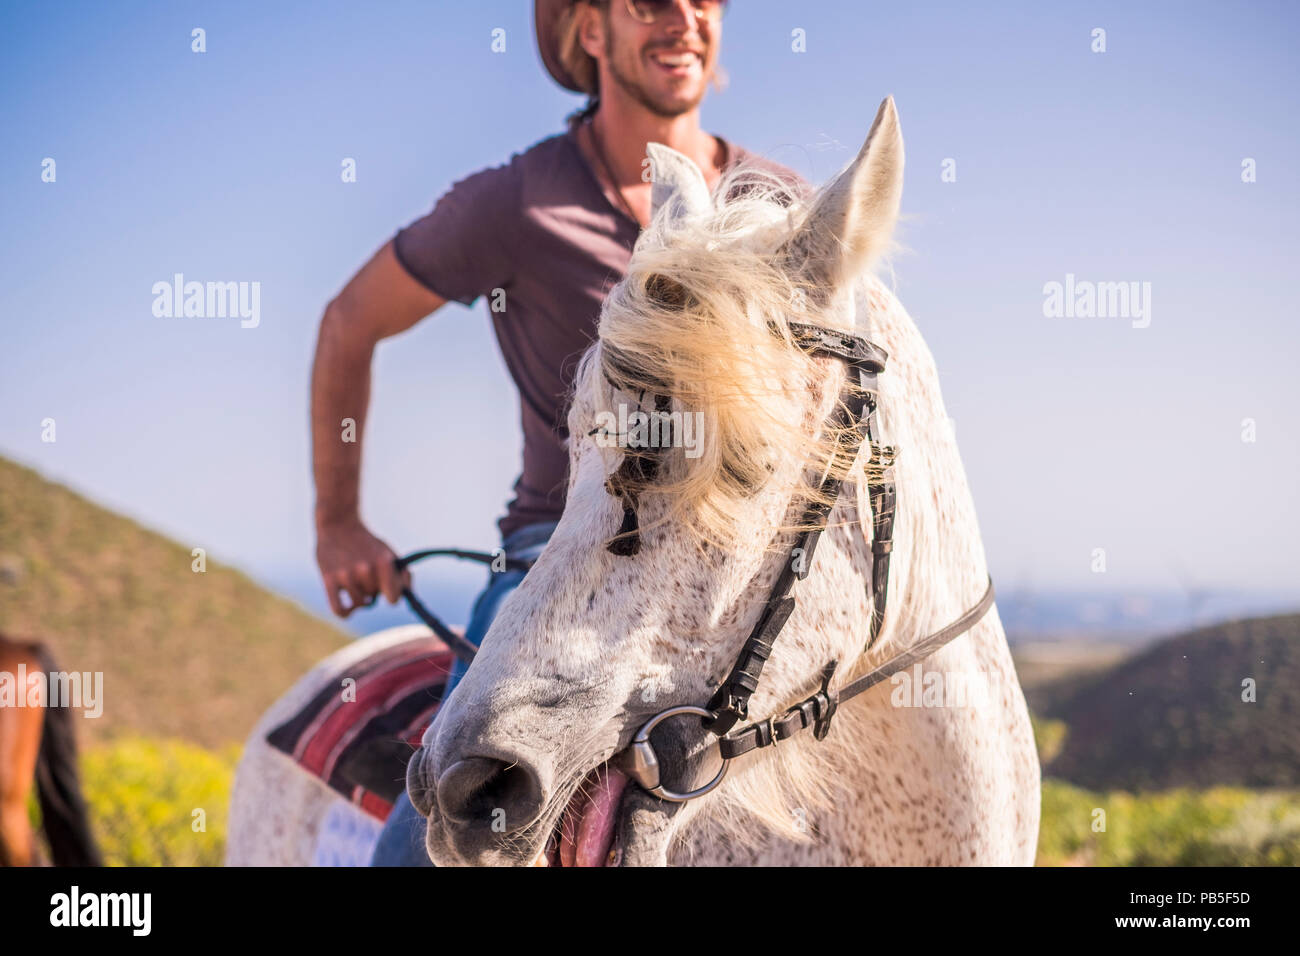 modern man cowboy enjoy a natural and alternative lifestyle riding a white horse. friendship and nature outdoor for beautiful people living a differen - Stock Image